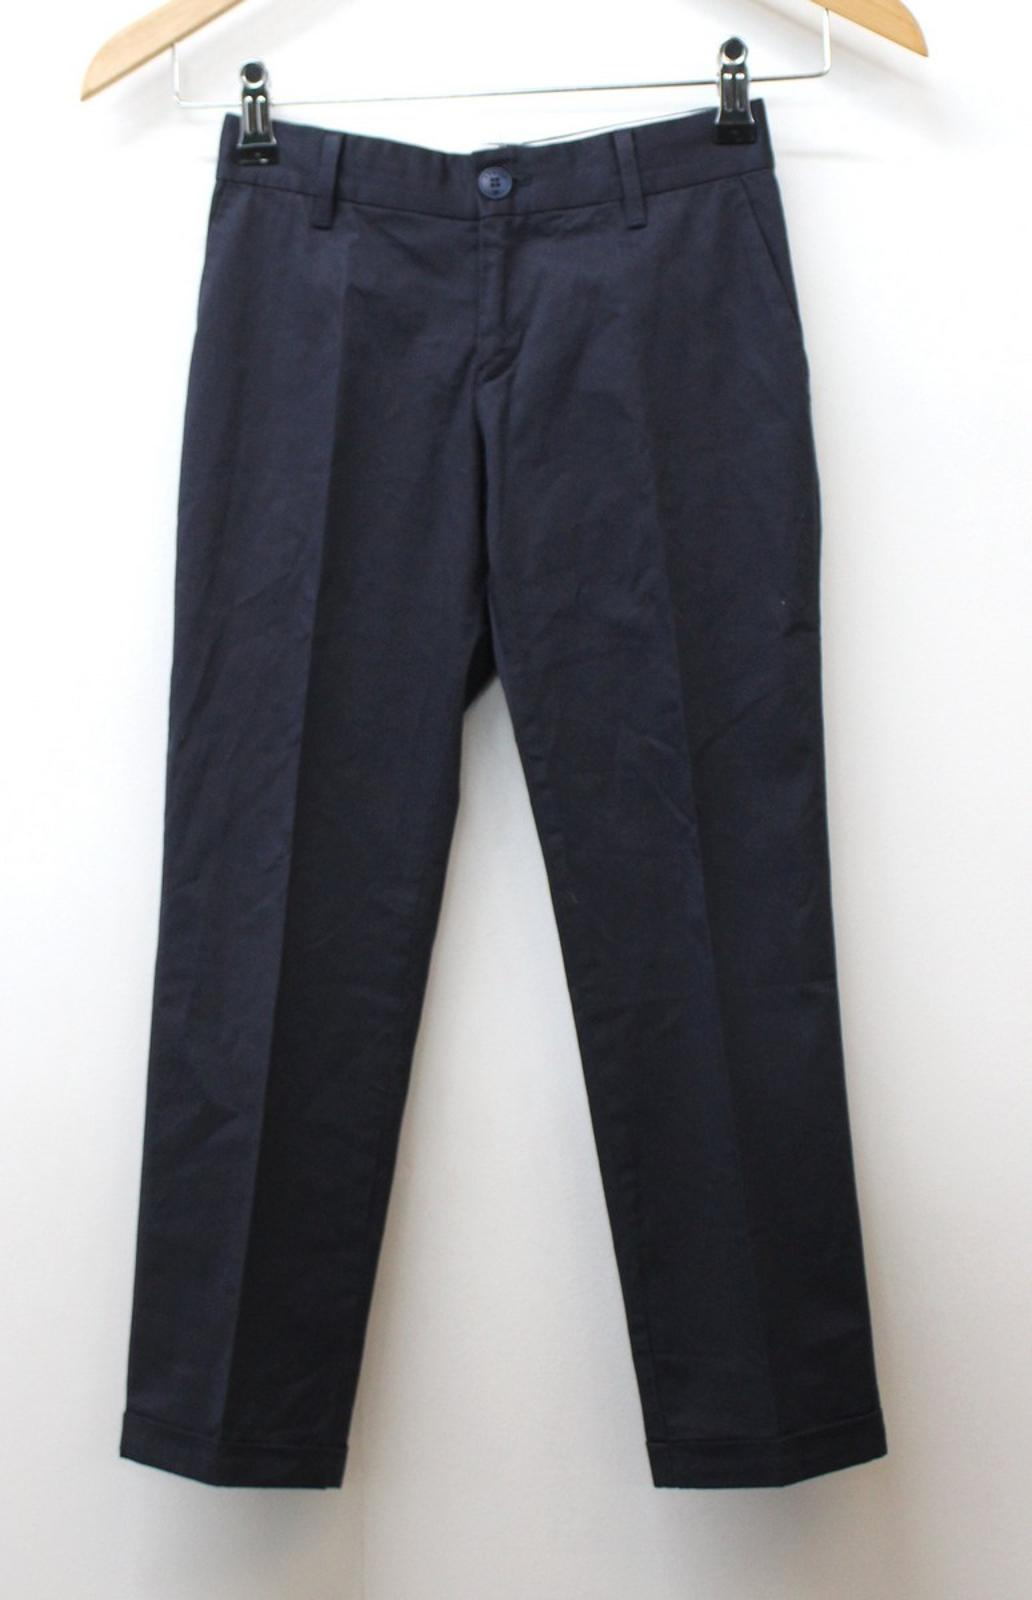 ARMANI Boys Navy Blue Cotton Blend Pleated Front Formal Trousers Size 7 Yrs. 12